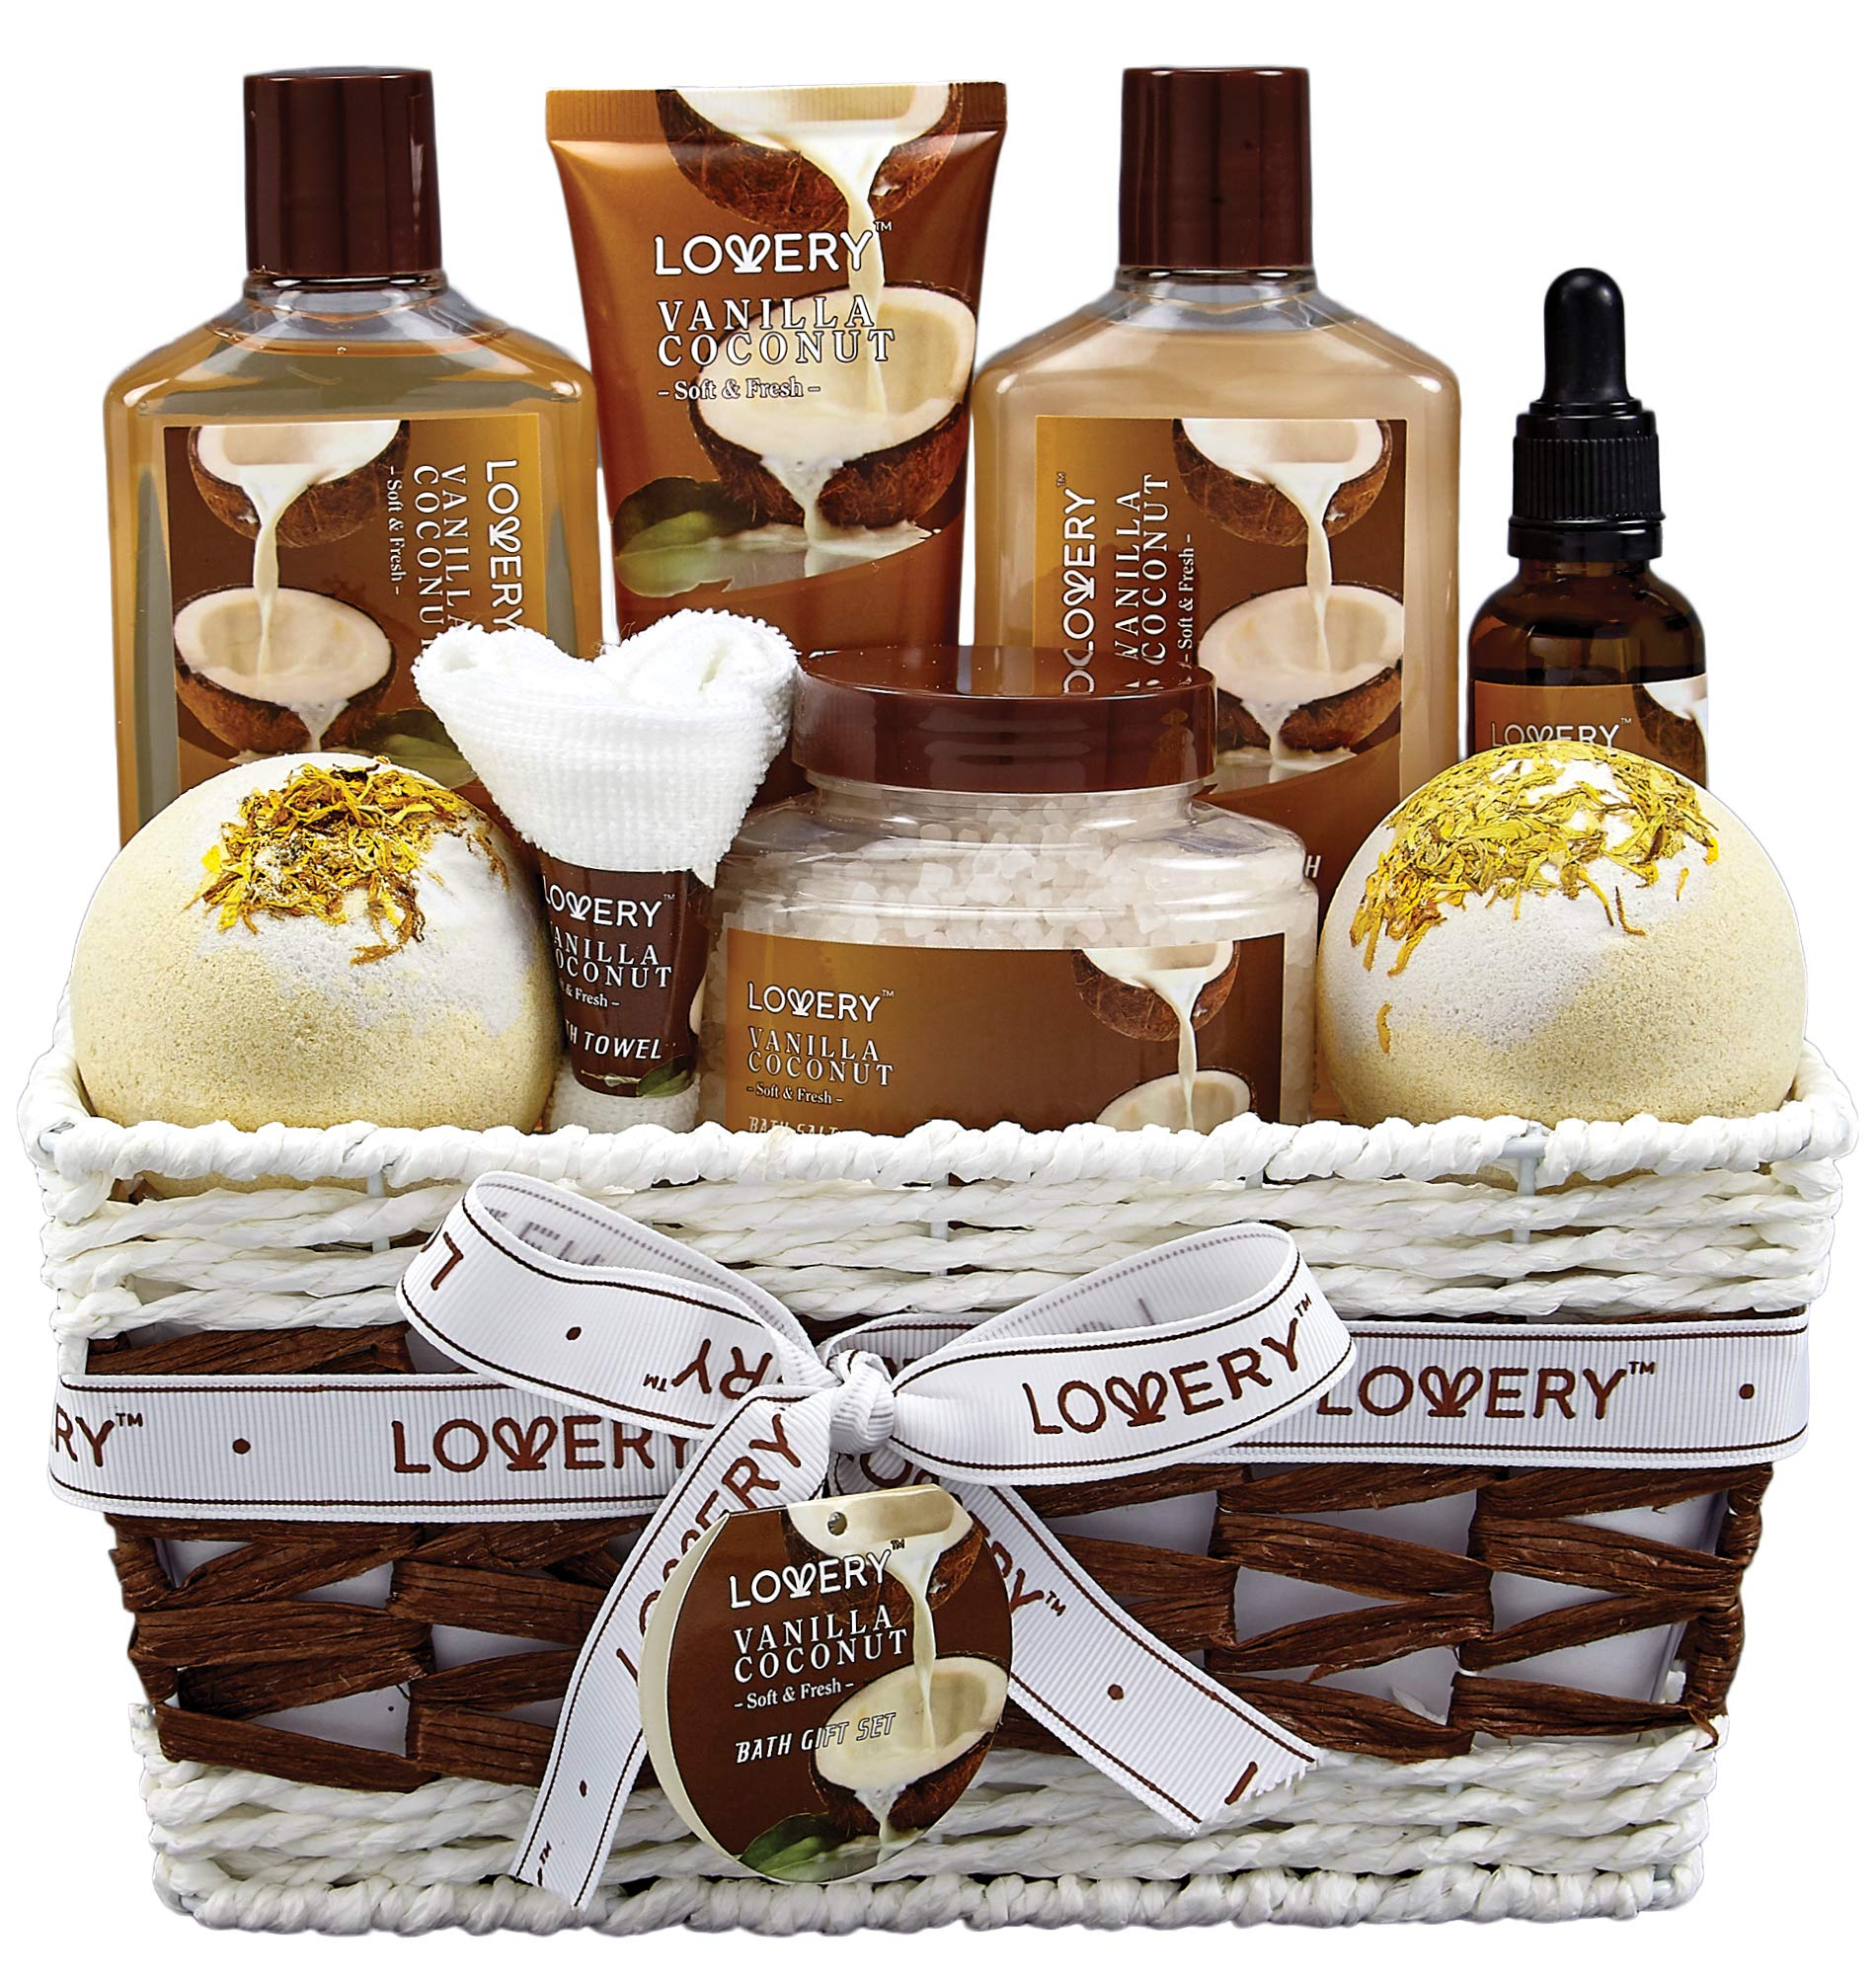 Bath and Body Gift Basket For Women and Men - 9 Piece Set of Vanilla Coconut Home Spa Set, Includes Fragrant Lotions, Extra Large Bath Bombs, Coconut Oil, Luxurious Bath Towel & More